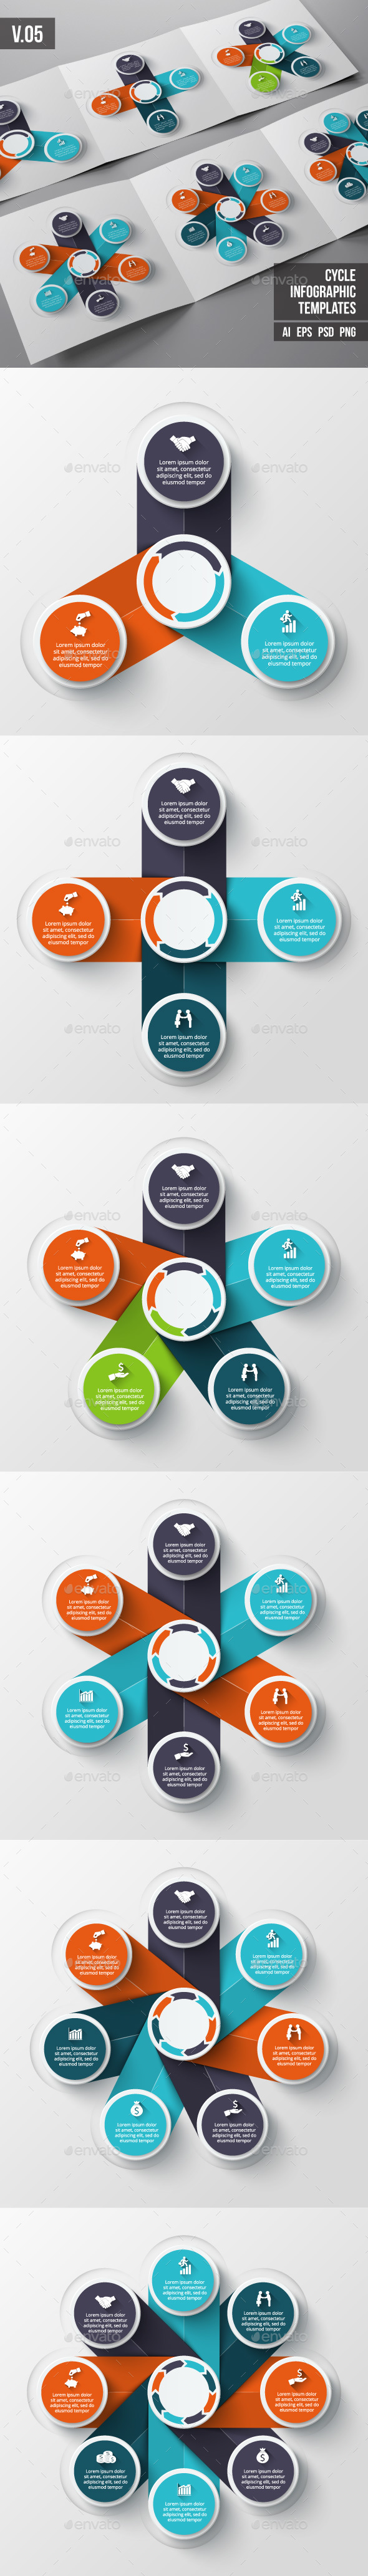 Infographic template psd download